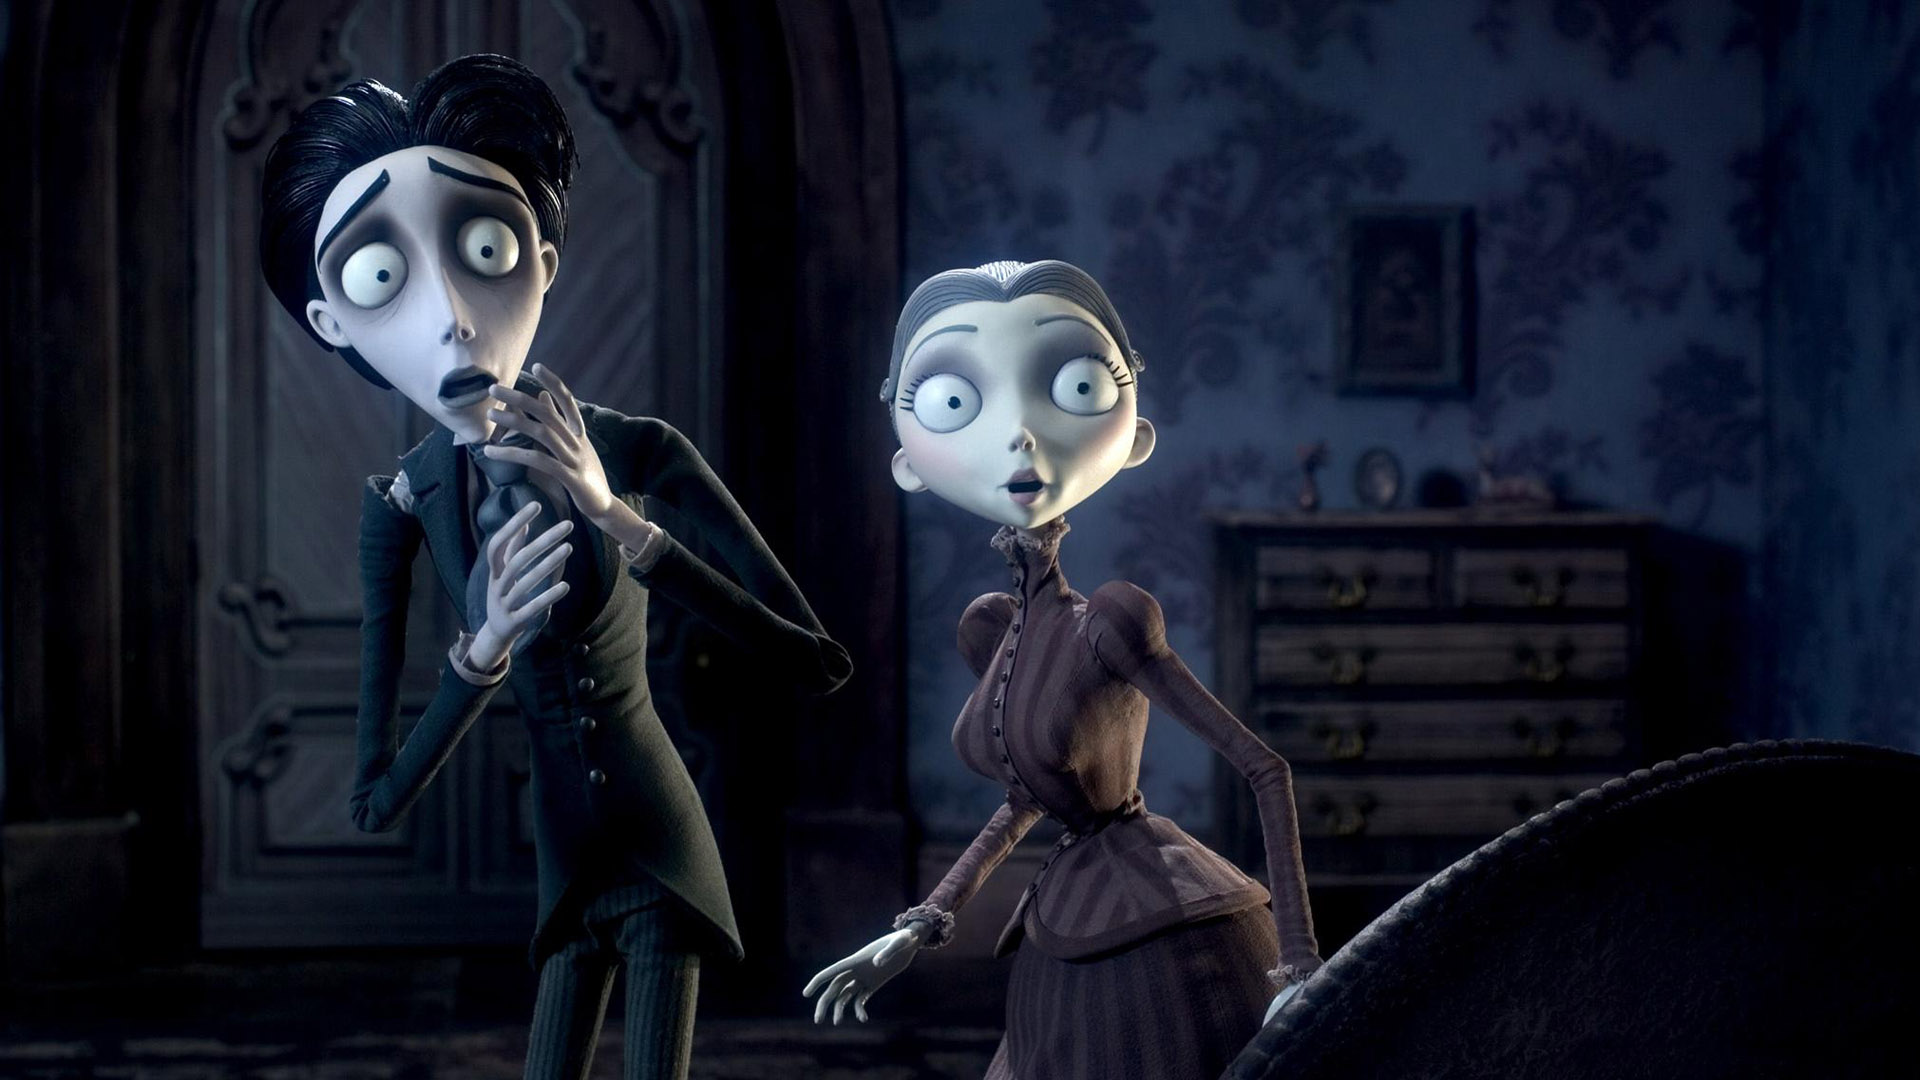 the real monsters in corpse bride a film by tim burton